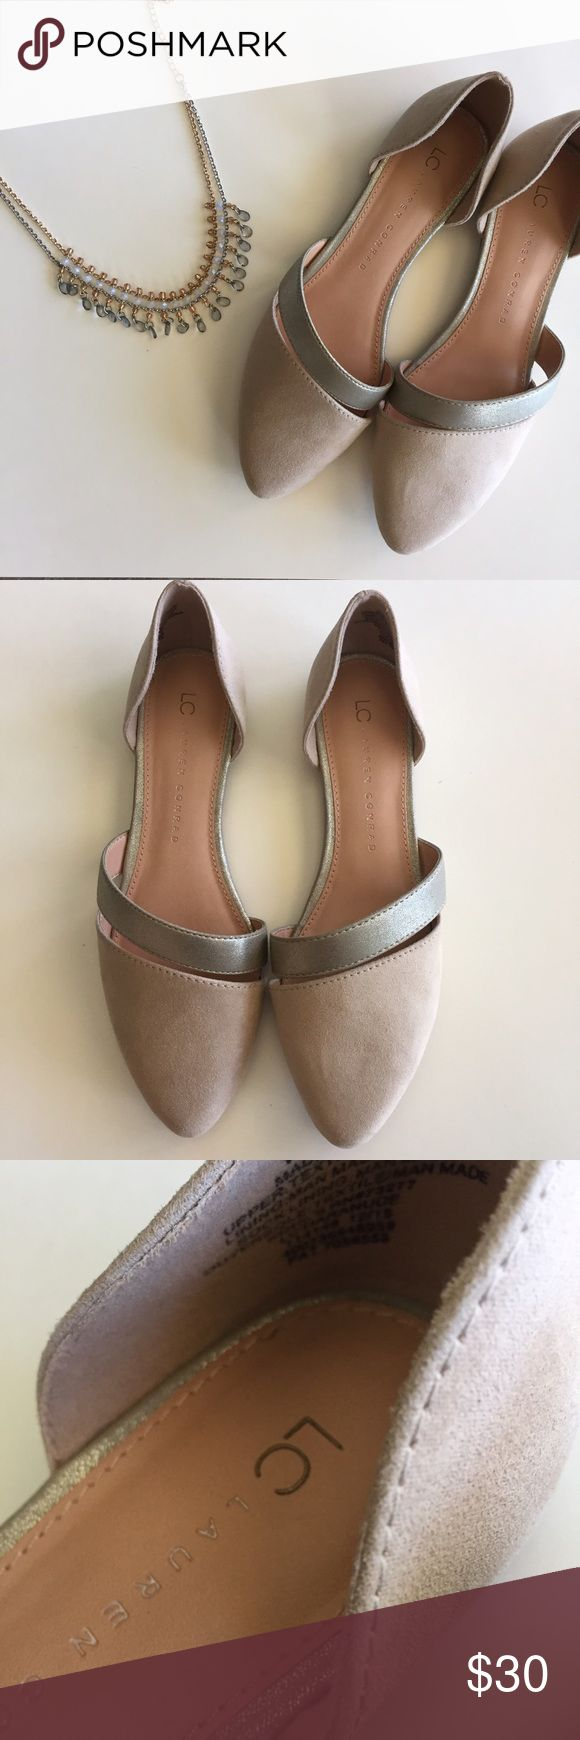 LC Lauren Conrad nude and silver pointed toe flats Excellent condition LC Lauren Conrad nude and silver pointed toe flats. No signs of wear. Size 7.5 LC Lauren Conrad Shoes Flats & Loafers